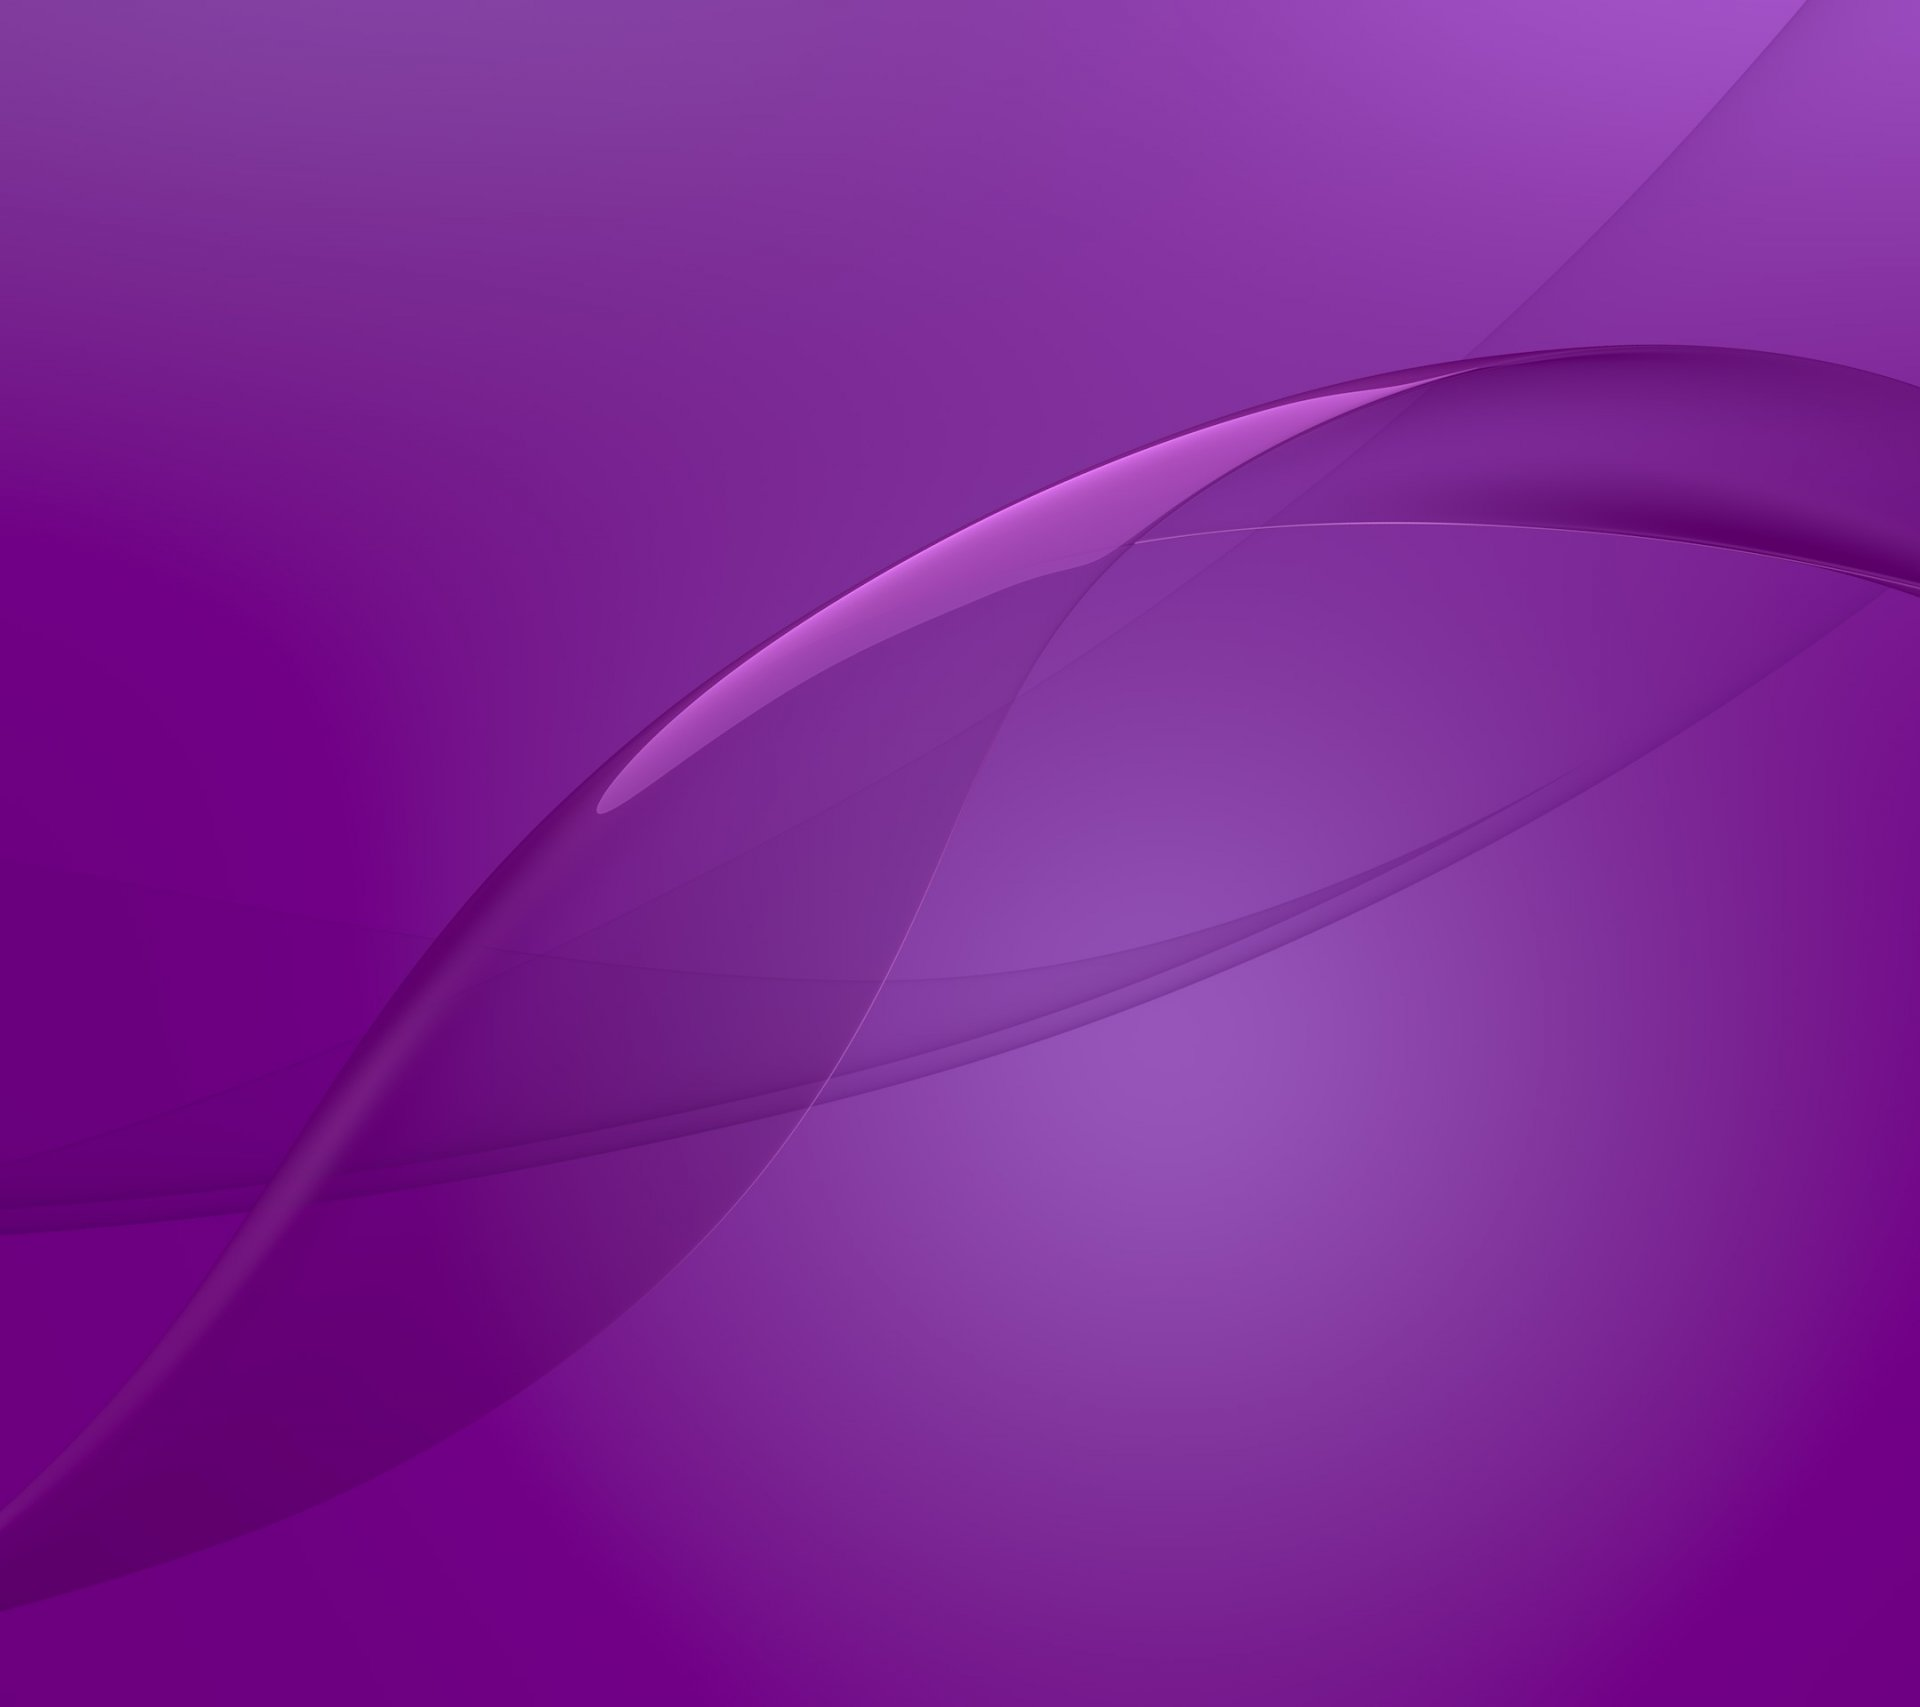 Sony xperia z3 stock wallpaper experience purple hd - Sony xperia z3 wallpaper hd ...